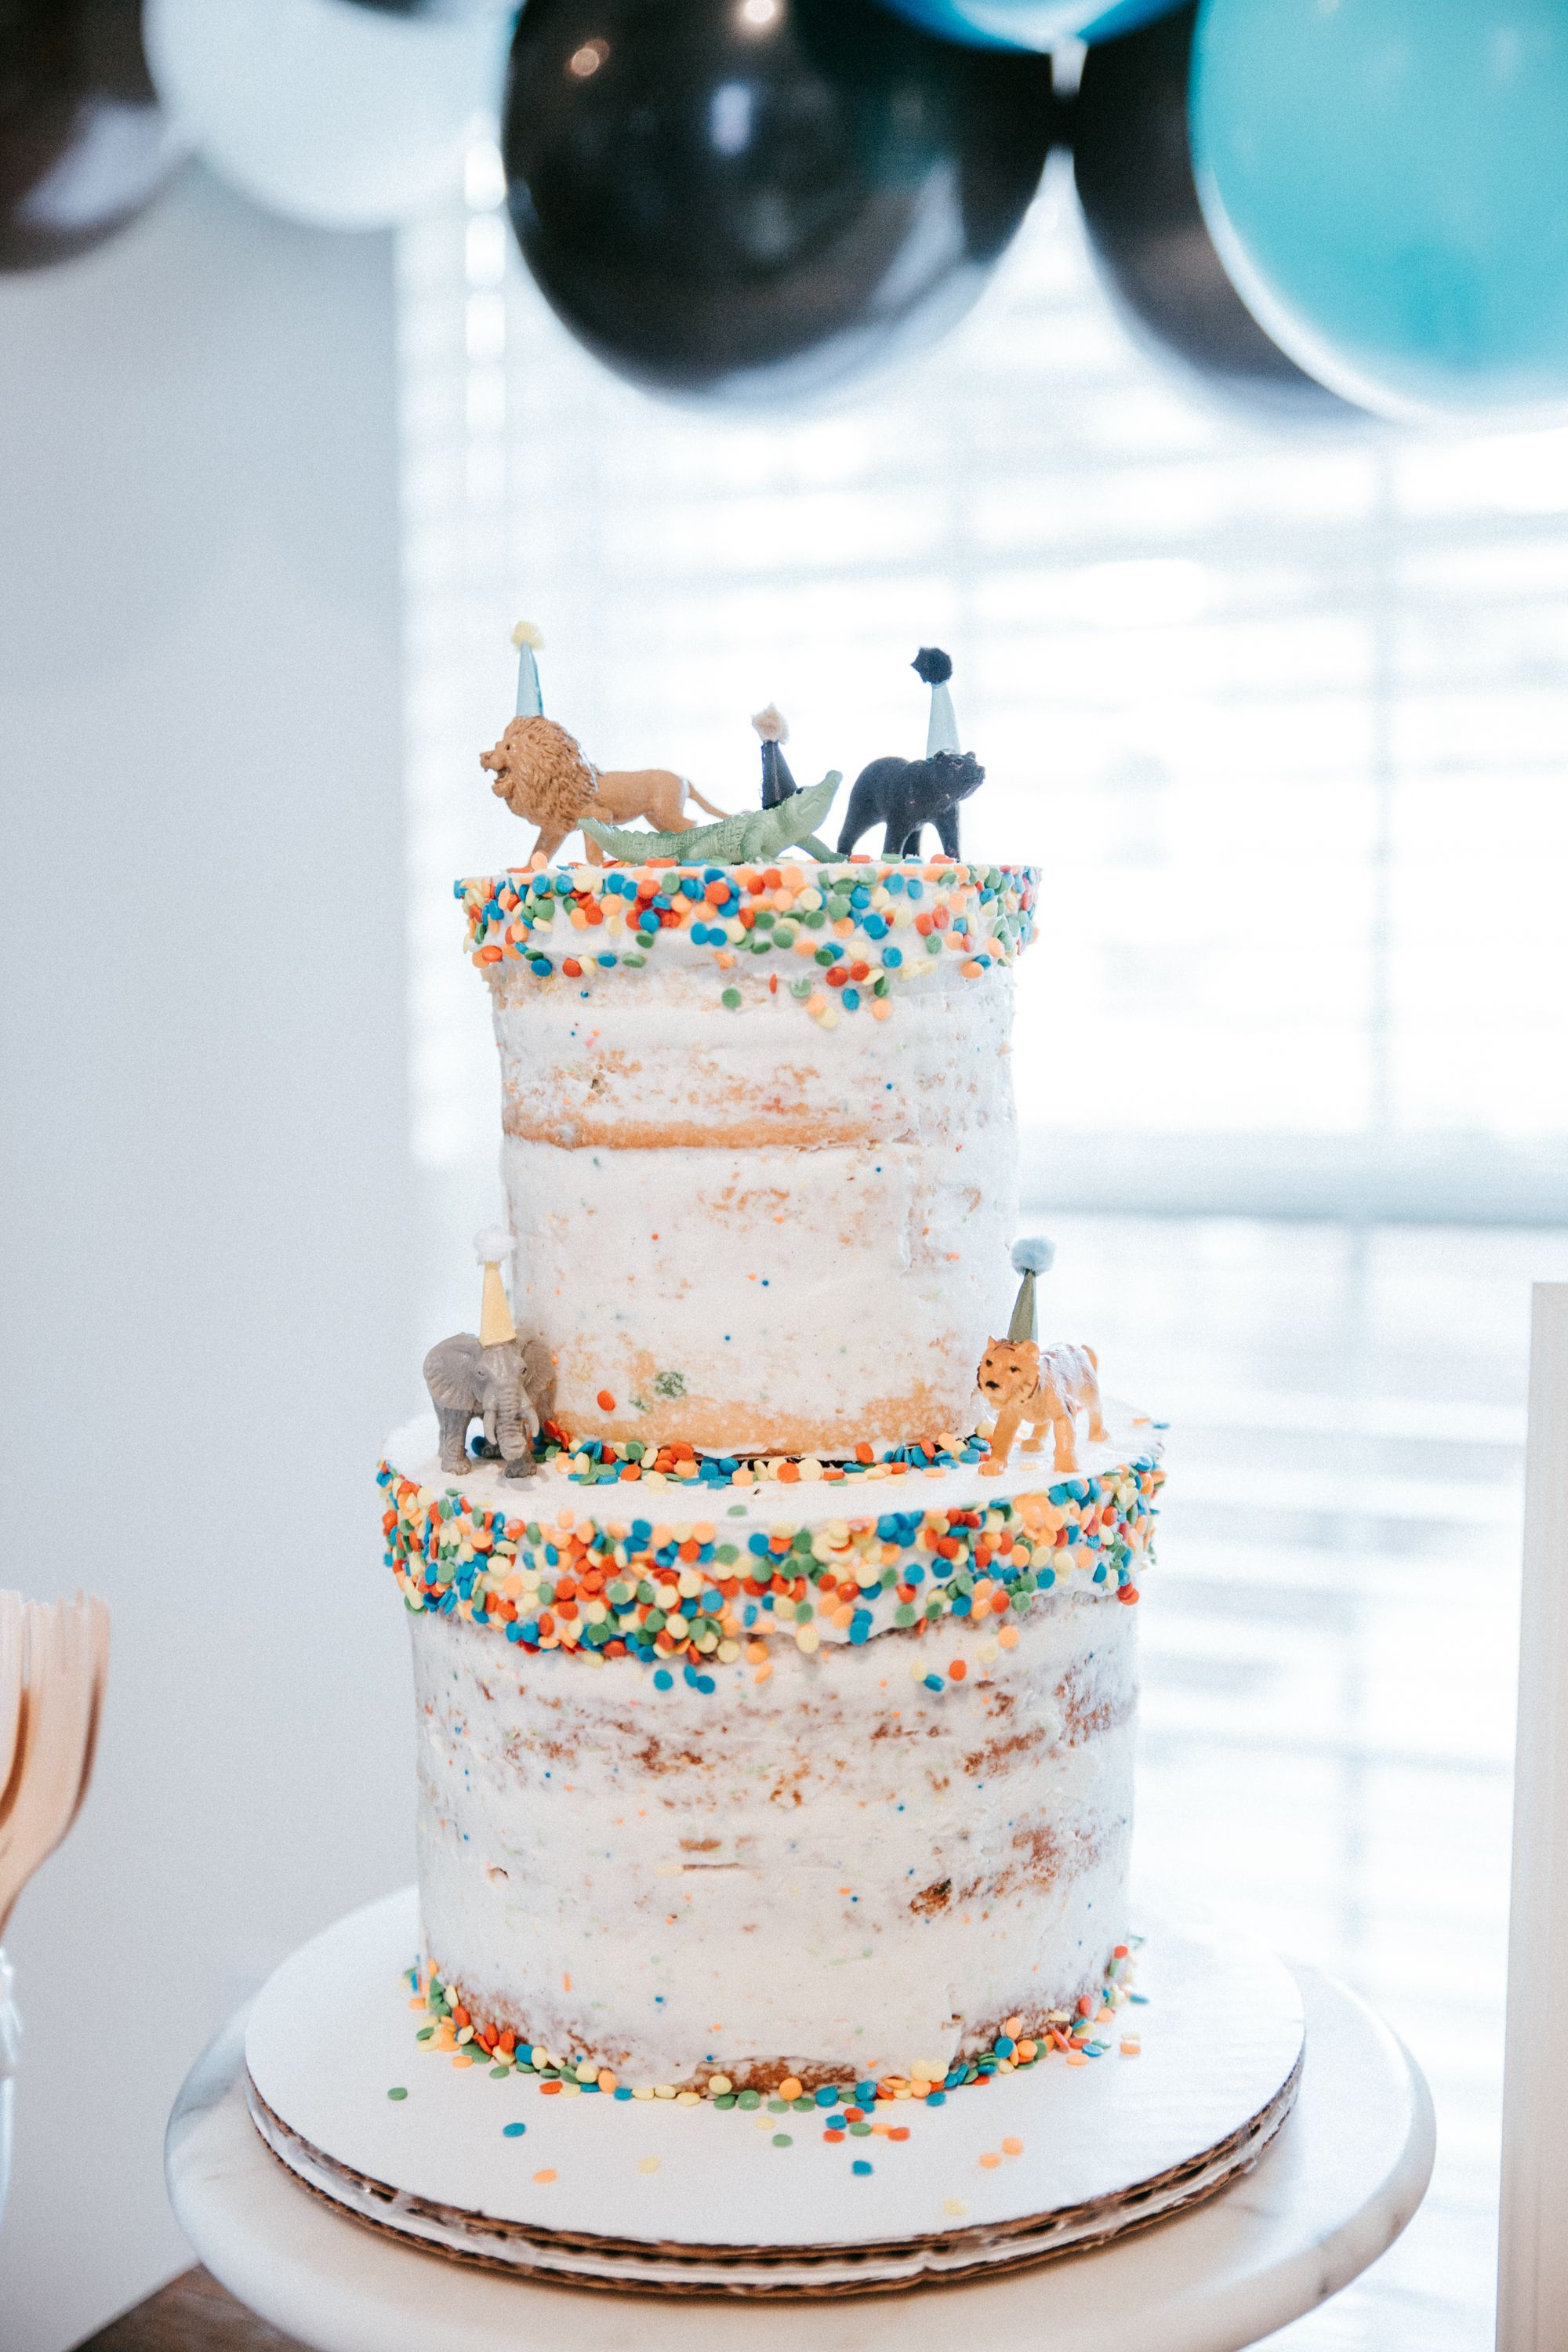 Naked Cake Party Animals Theme Sprinkles Hats Baby First Birthday